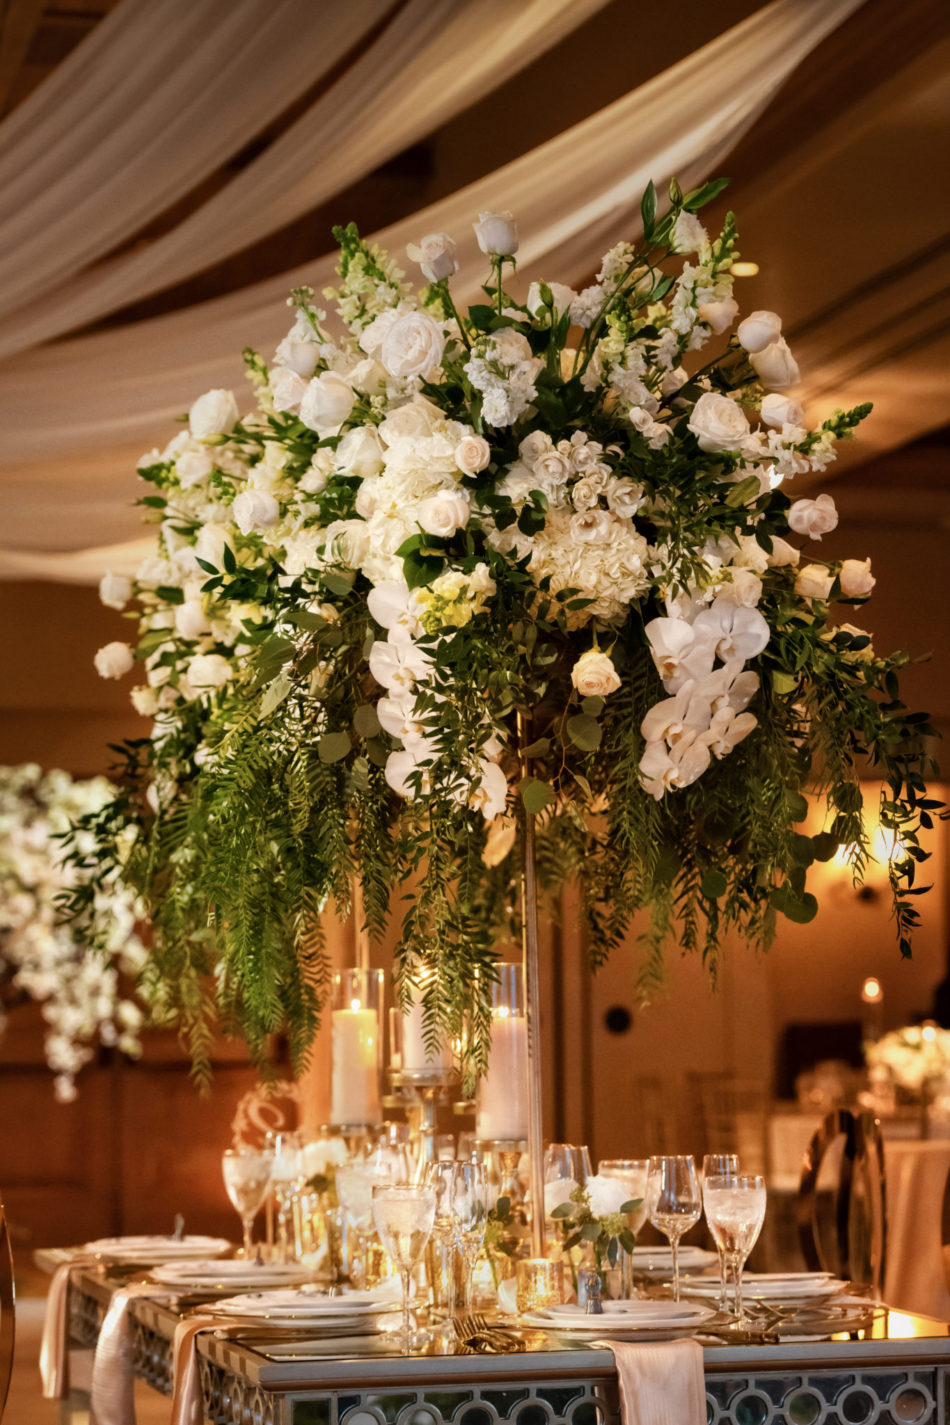 white blooms, white centerpiece, white floral arrangement, floral design, florist, wedding florist, wedding flowers, orange county weddings, orange county wedding florist, orange county florist, orange county floral design, flowers by cina